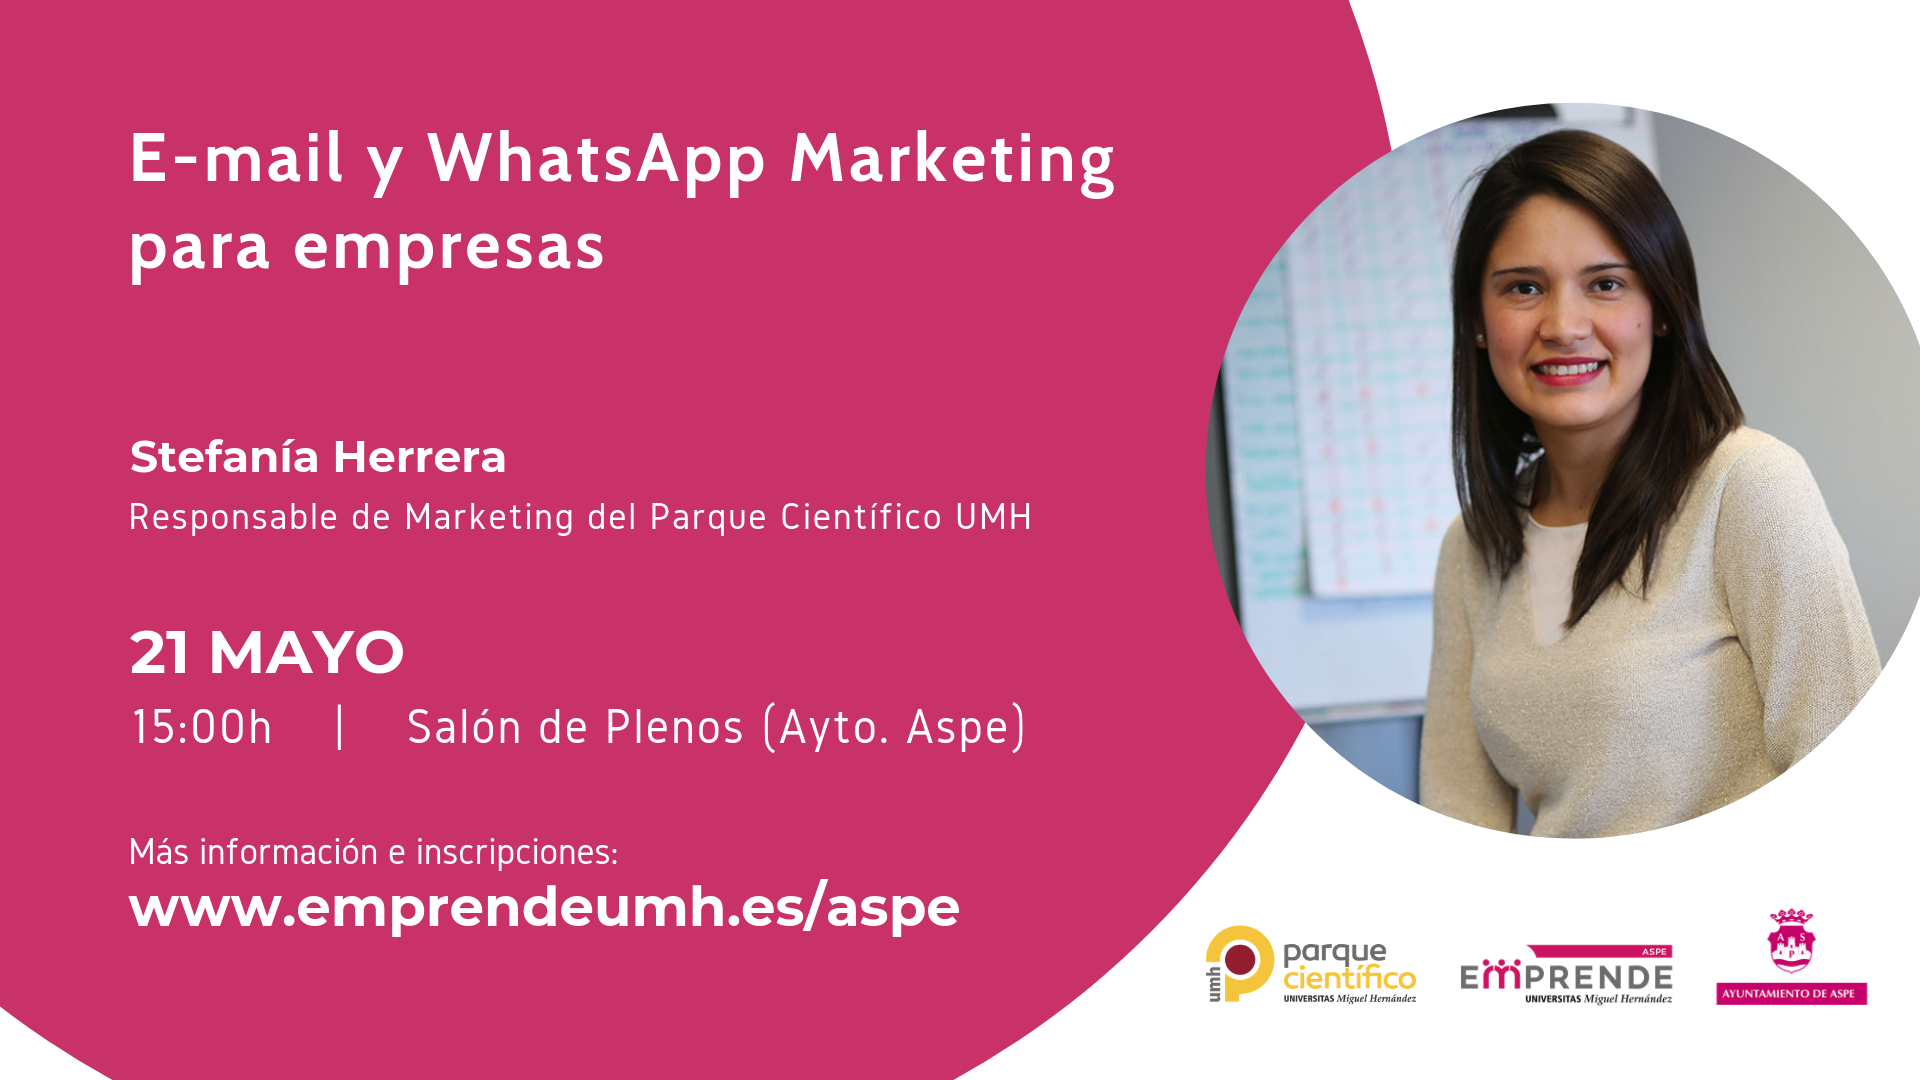 E-mail y WhatsApp Marketing para empresas